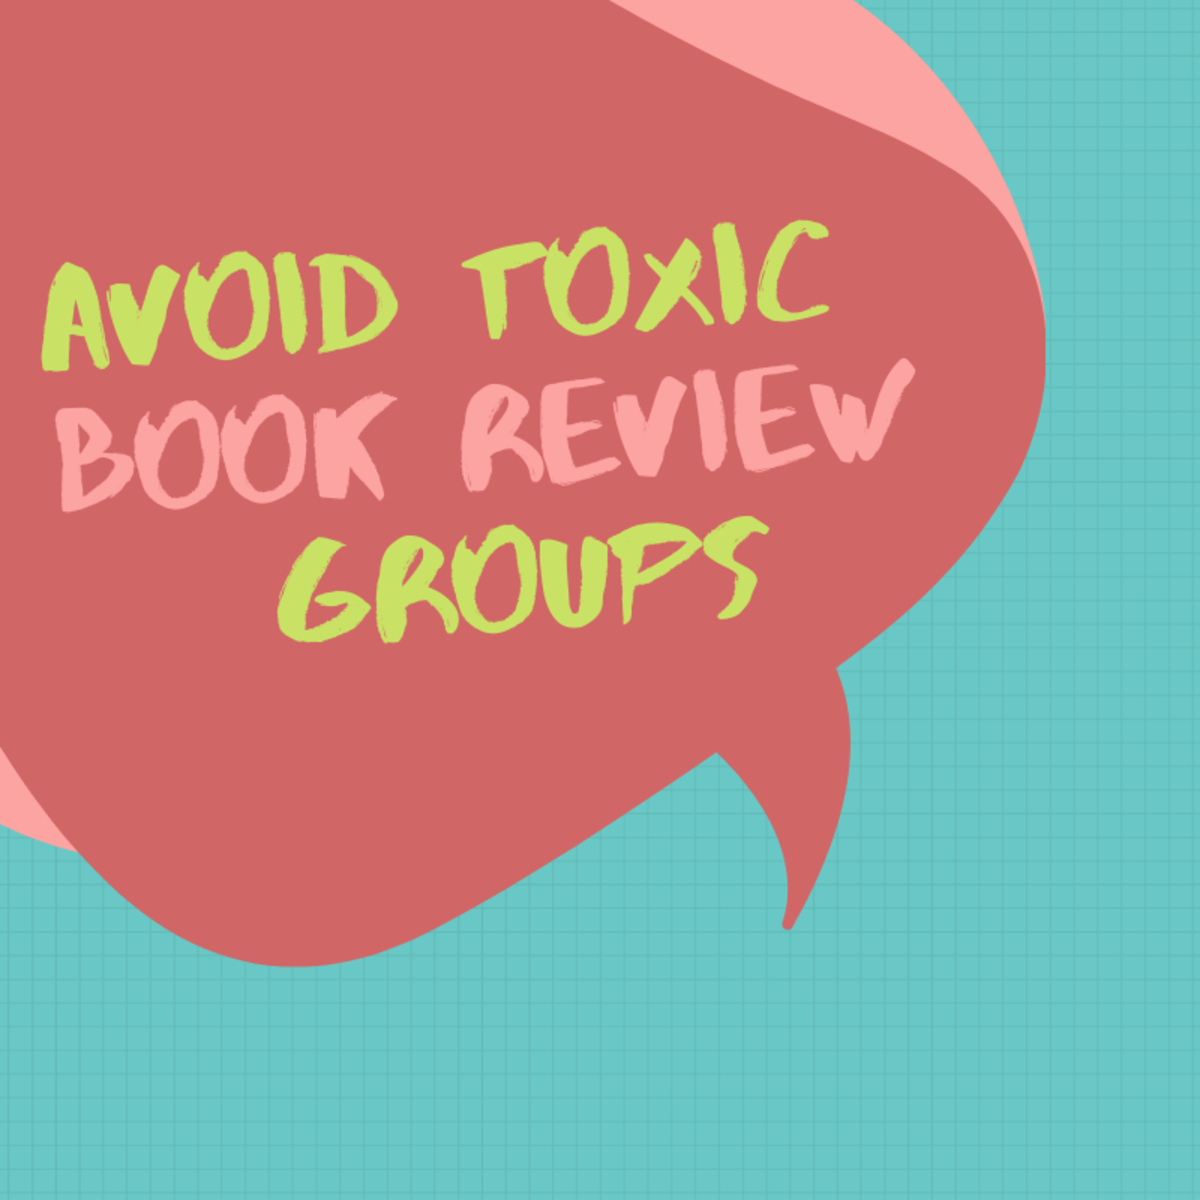 There are more productive ways to get reviews than with book review groups.